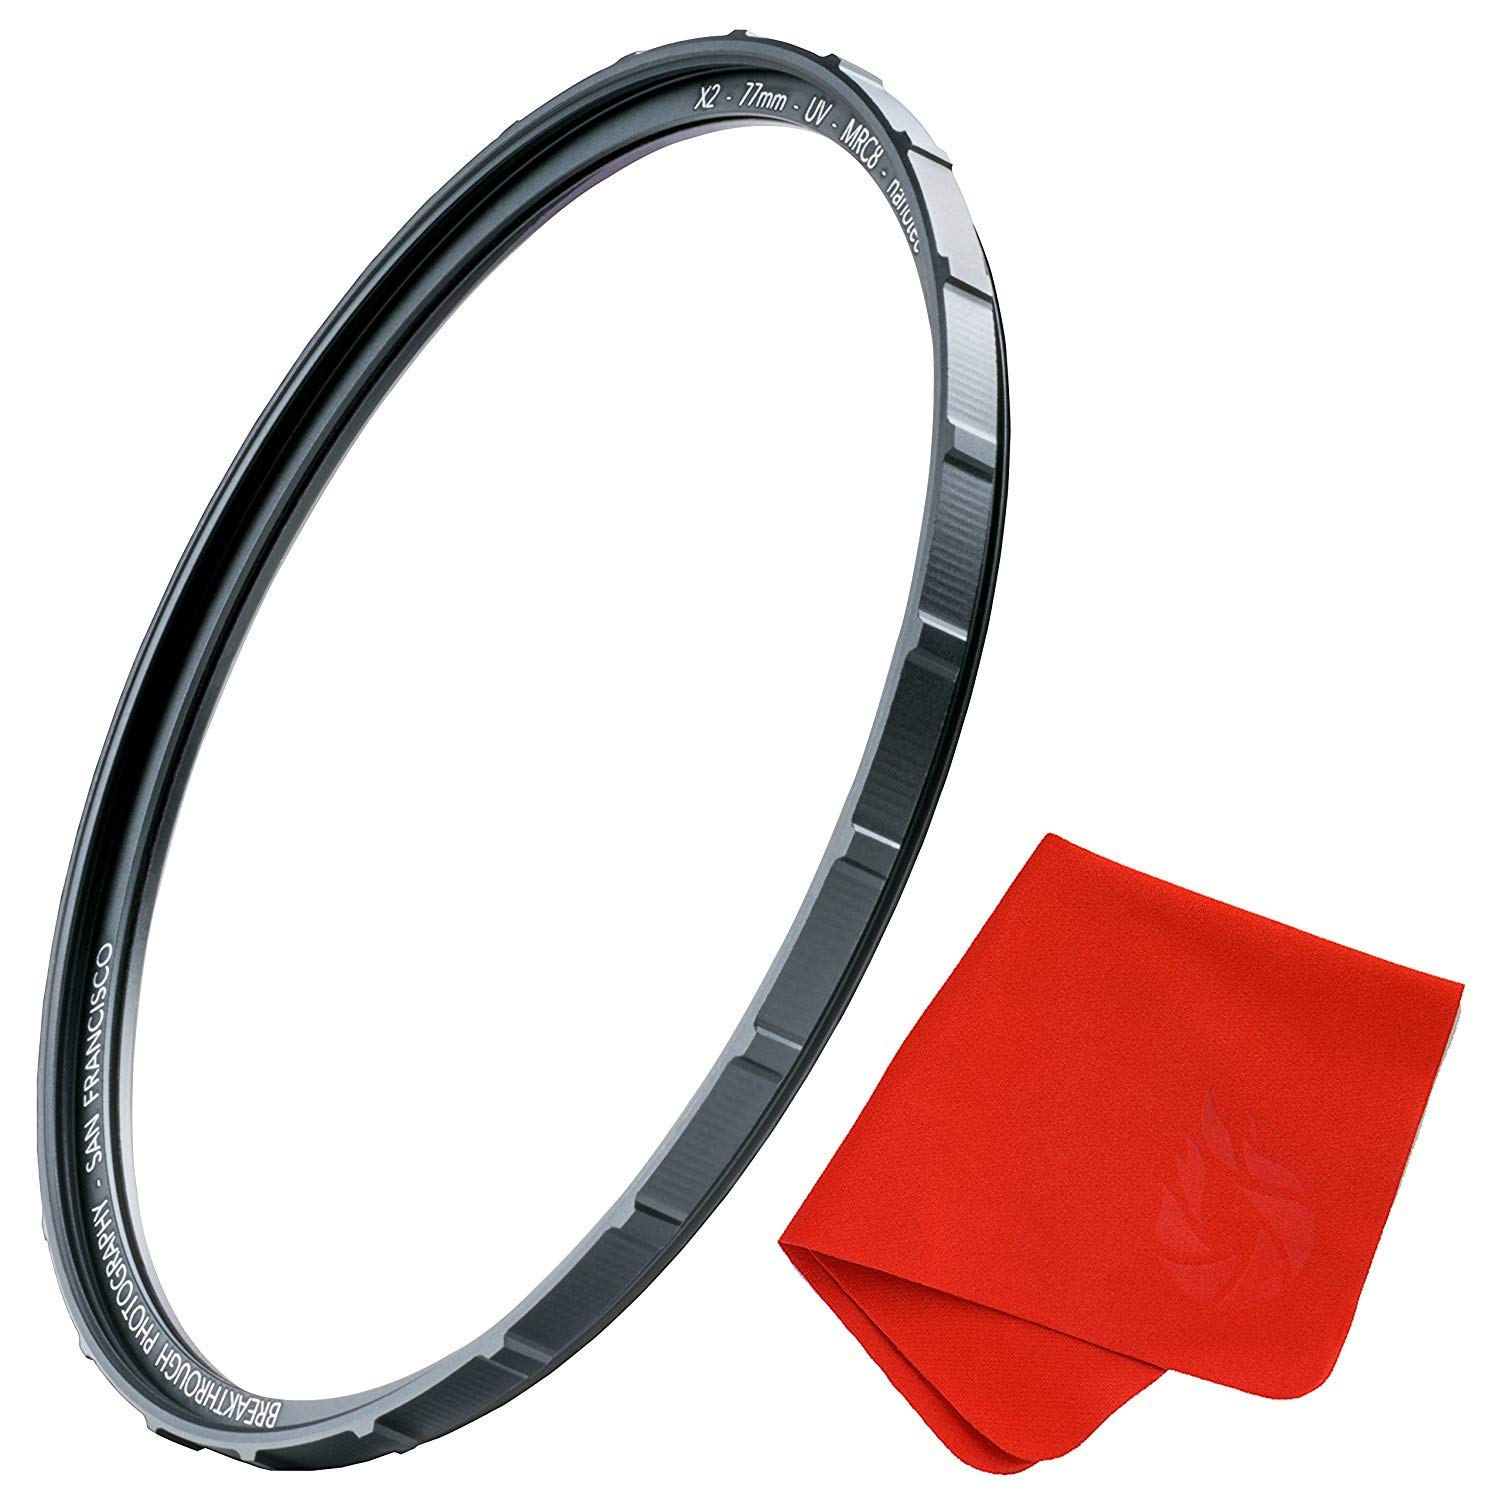 95mm X2 UV Filter for Camera Lenses - UV Protection Photography Filter with Lens Cloth - MRC8, Nanotech Coatings, Ultra-Slim, Traction Frame, Weather-Sealed by Breakthrough Photography